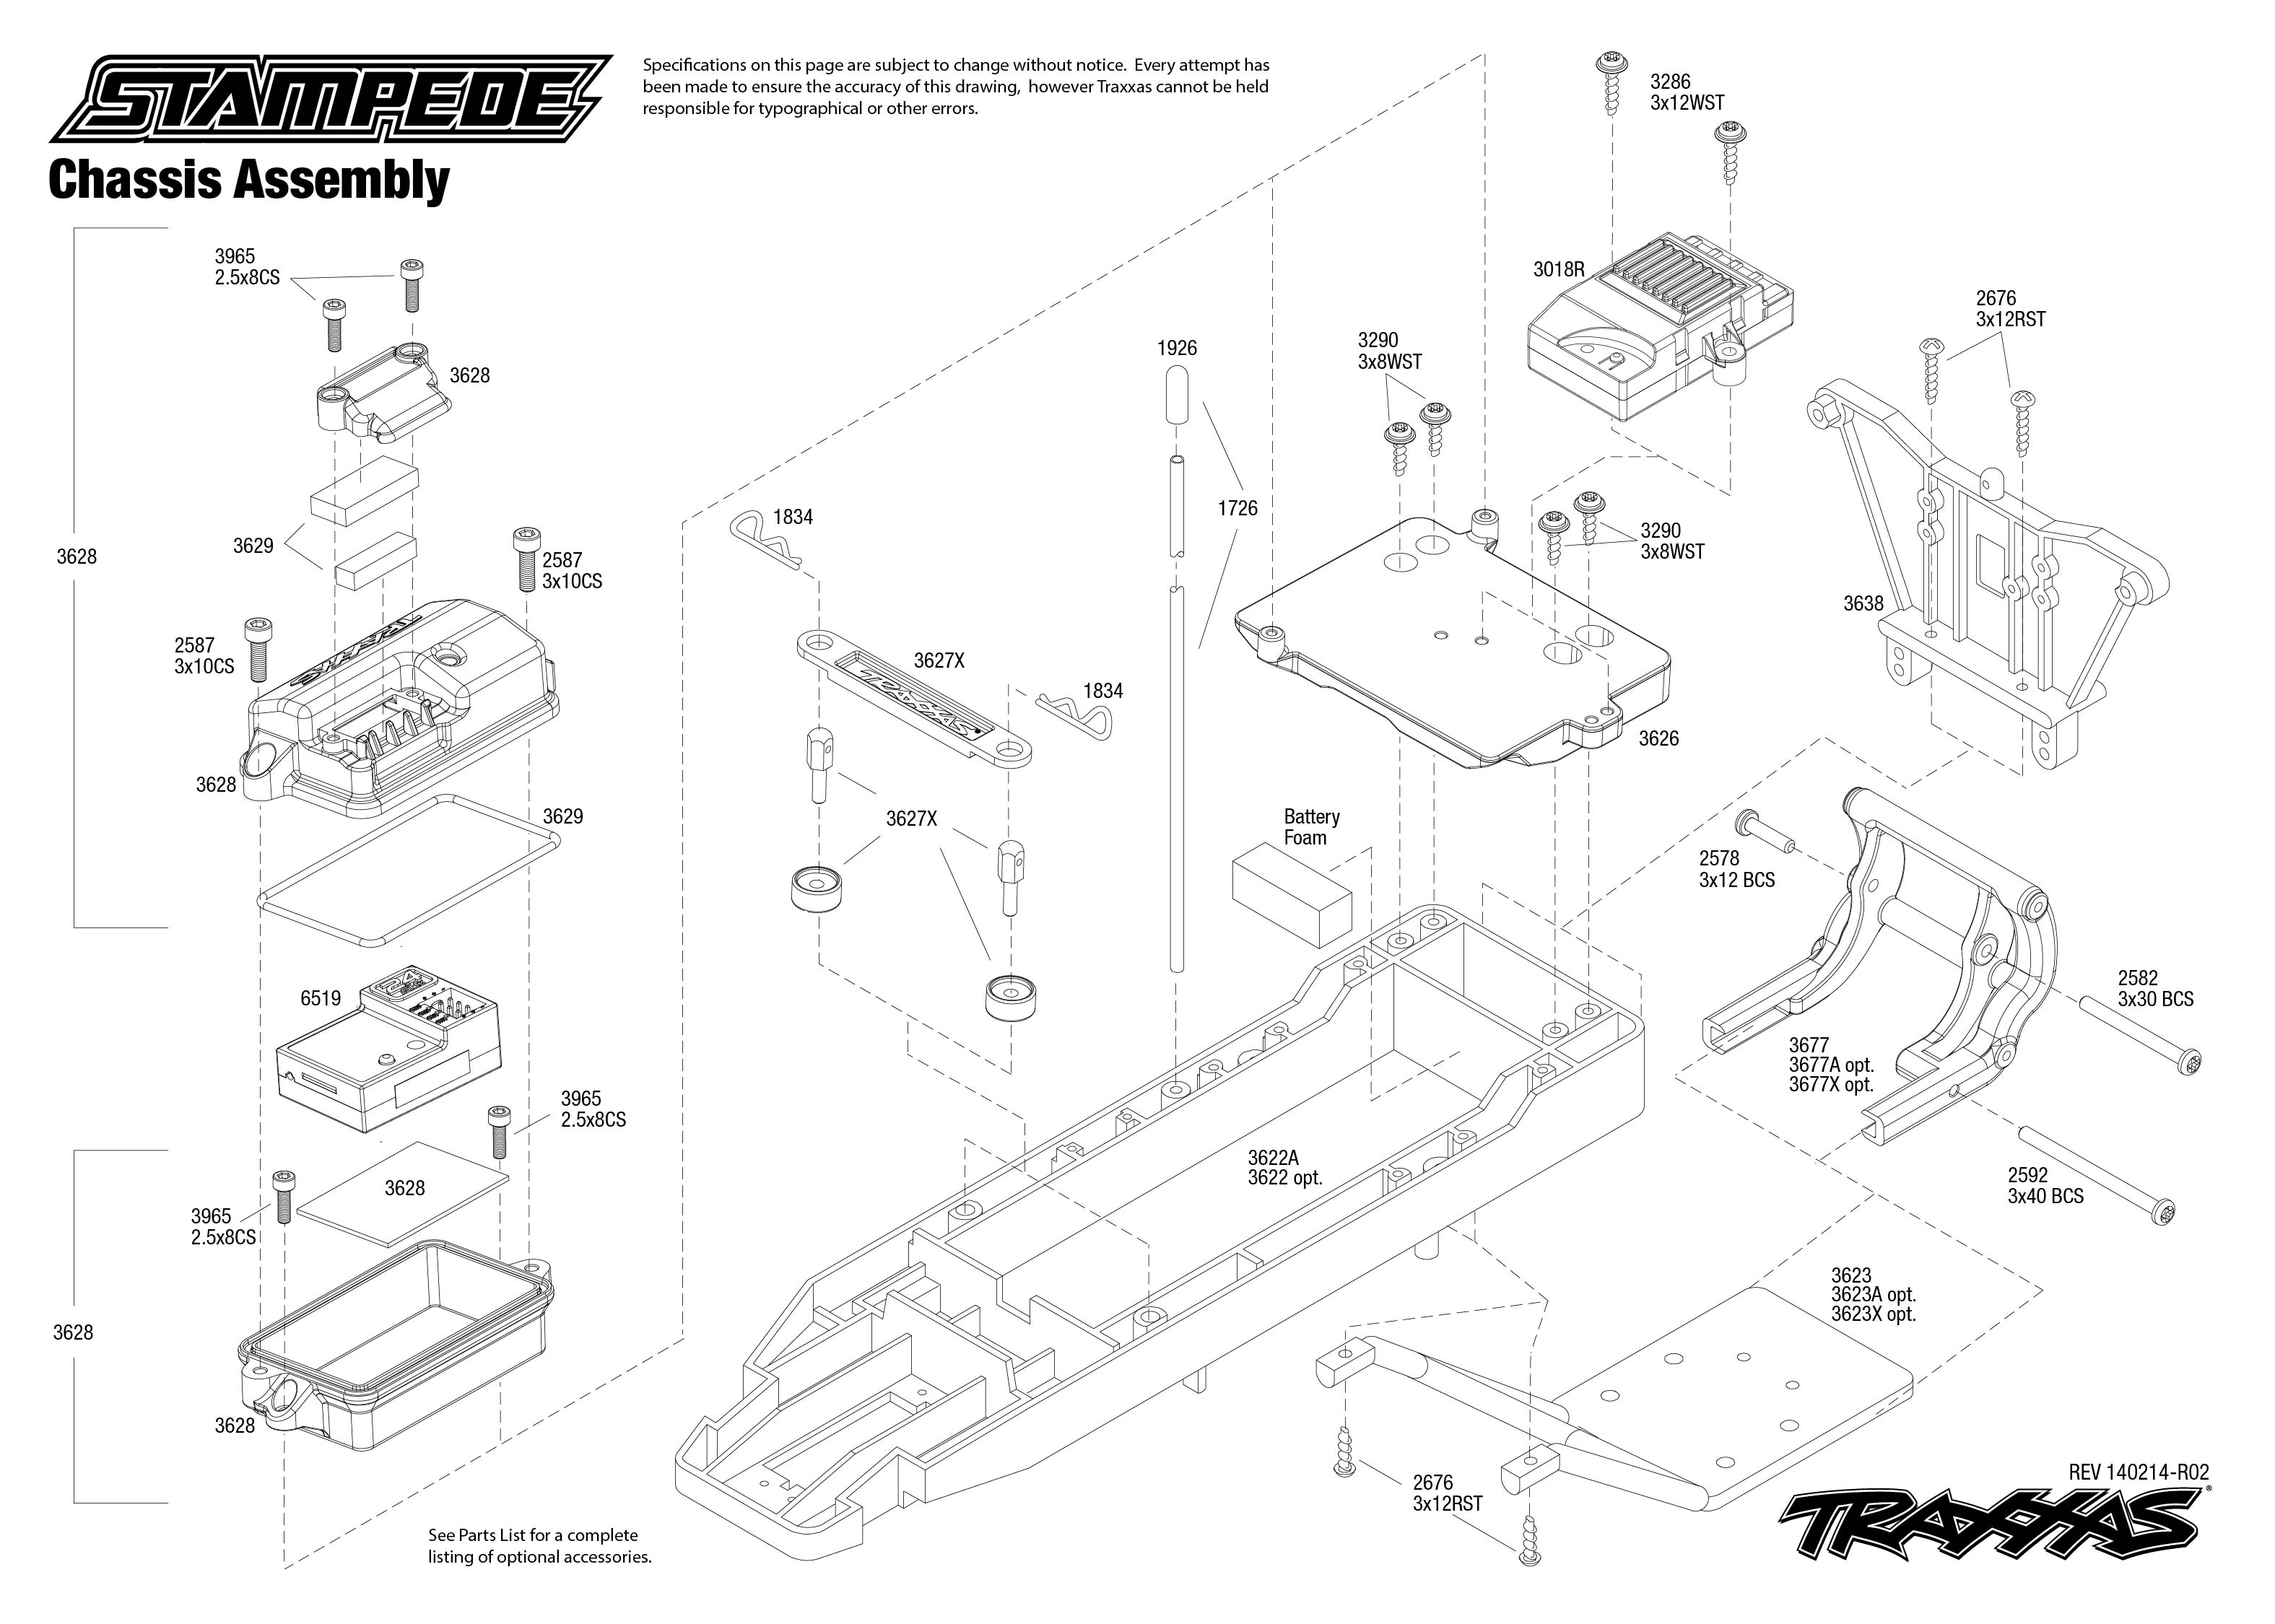 Traxxas 6518 Wiring Diagram : 27 Wiring Diagram Images